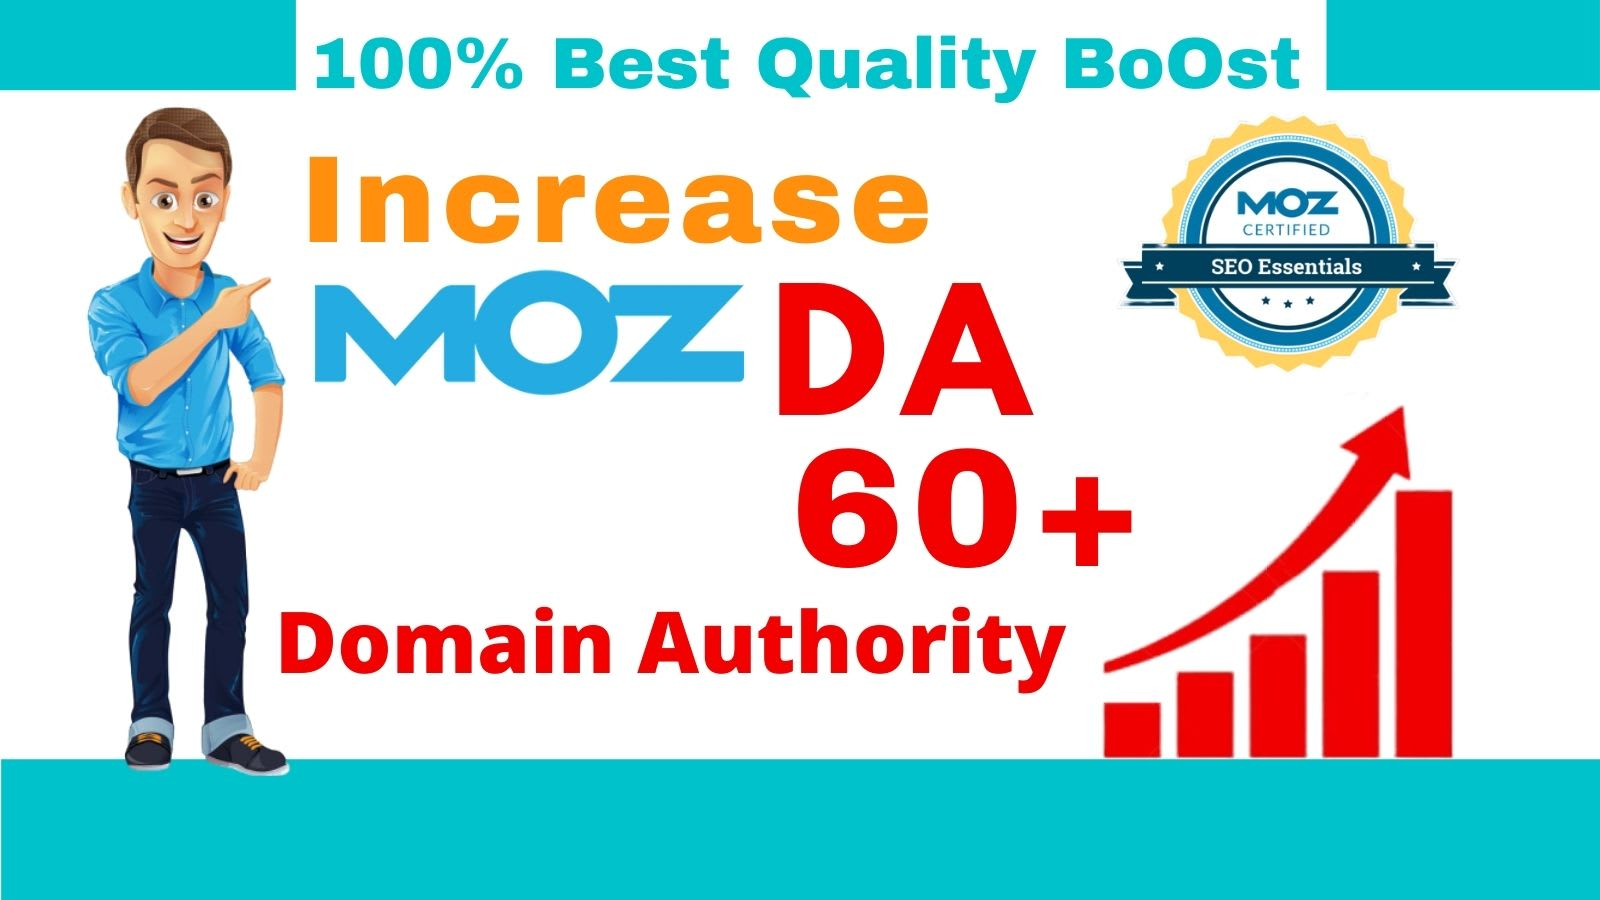 Increase Domain Authority MOZ DA with High Authority Backlinks